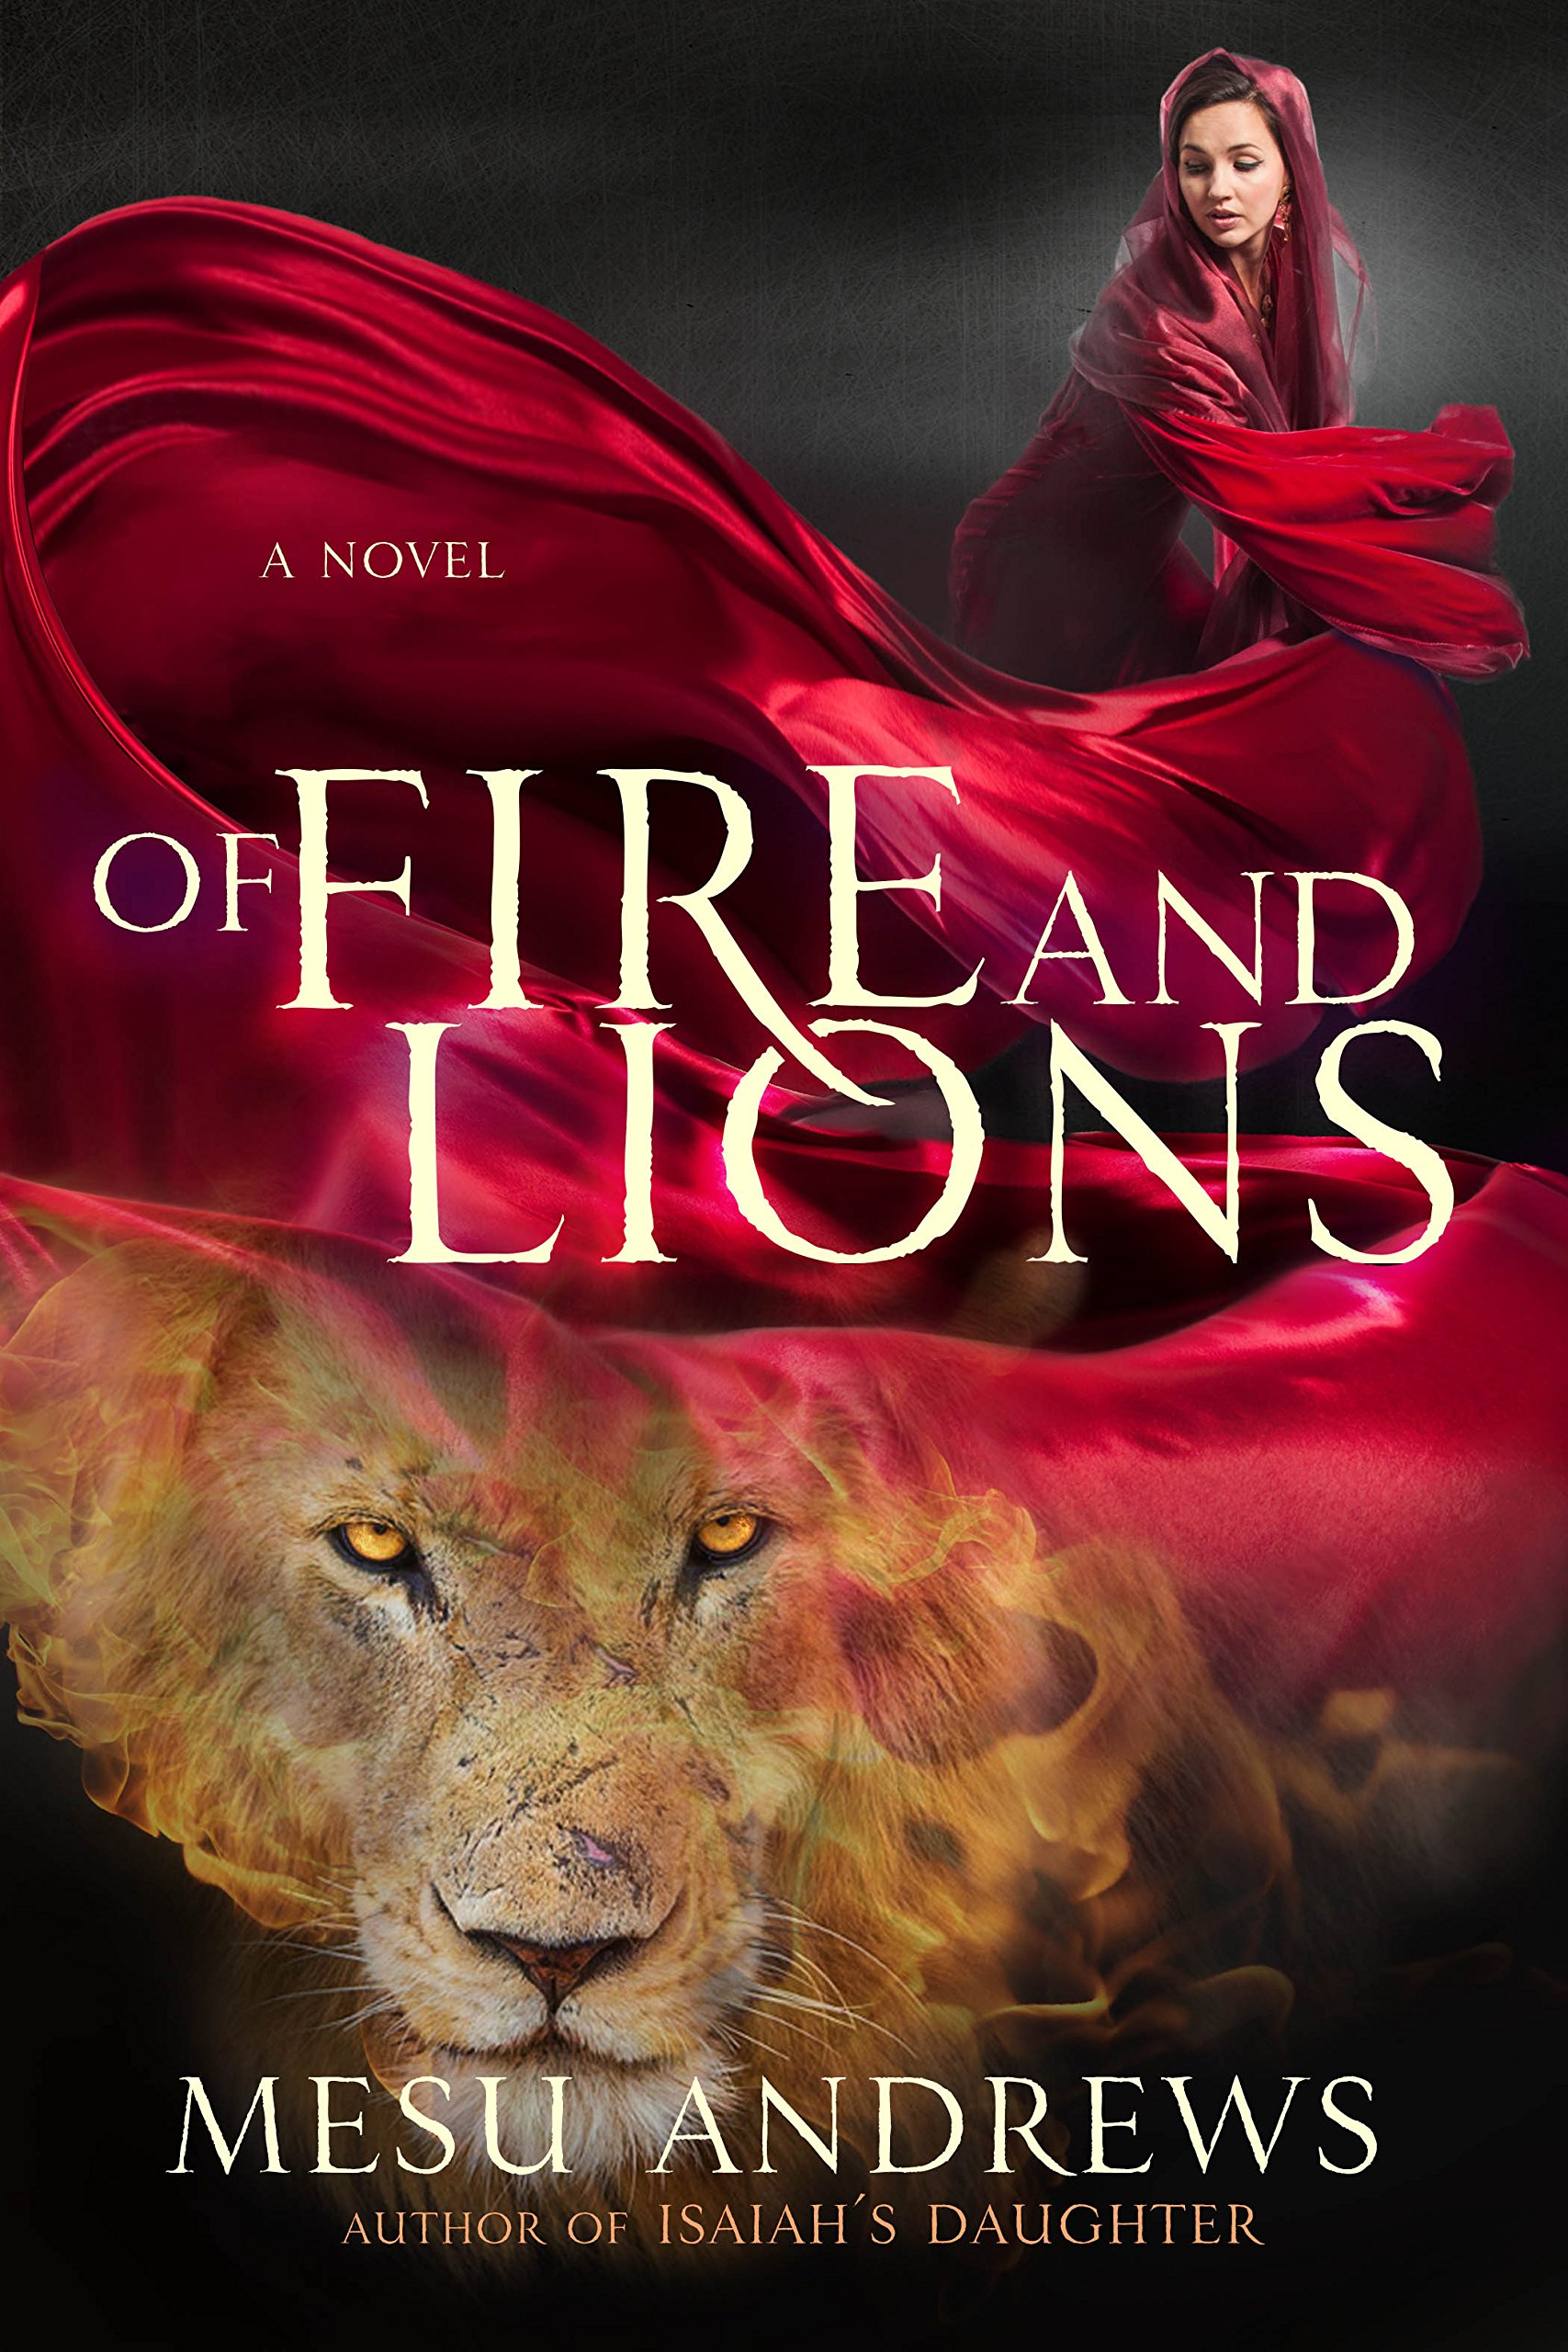 Amazon.com: Of Fire and Lions: A Novel (9780735291867): Mesu ...